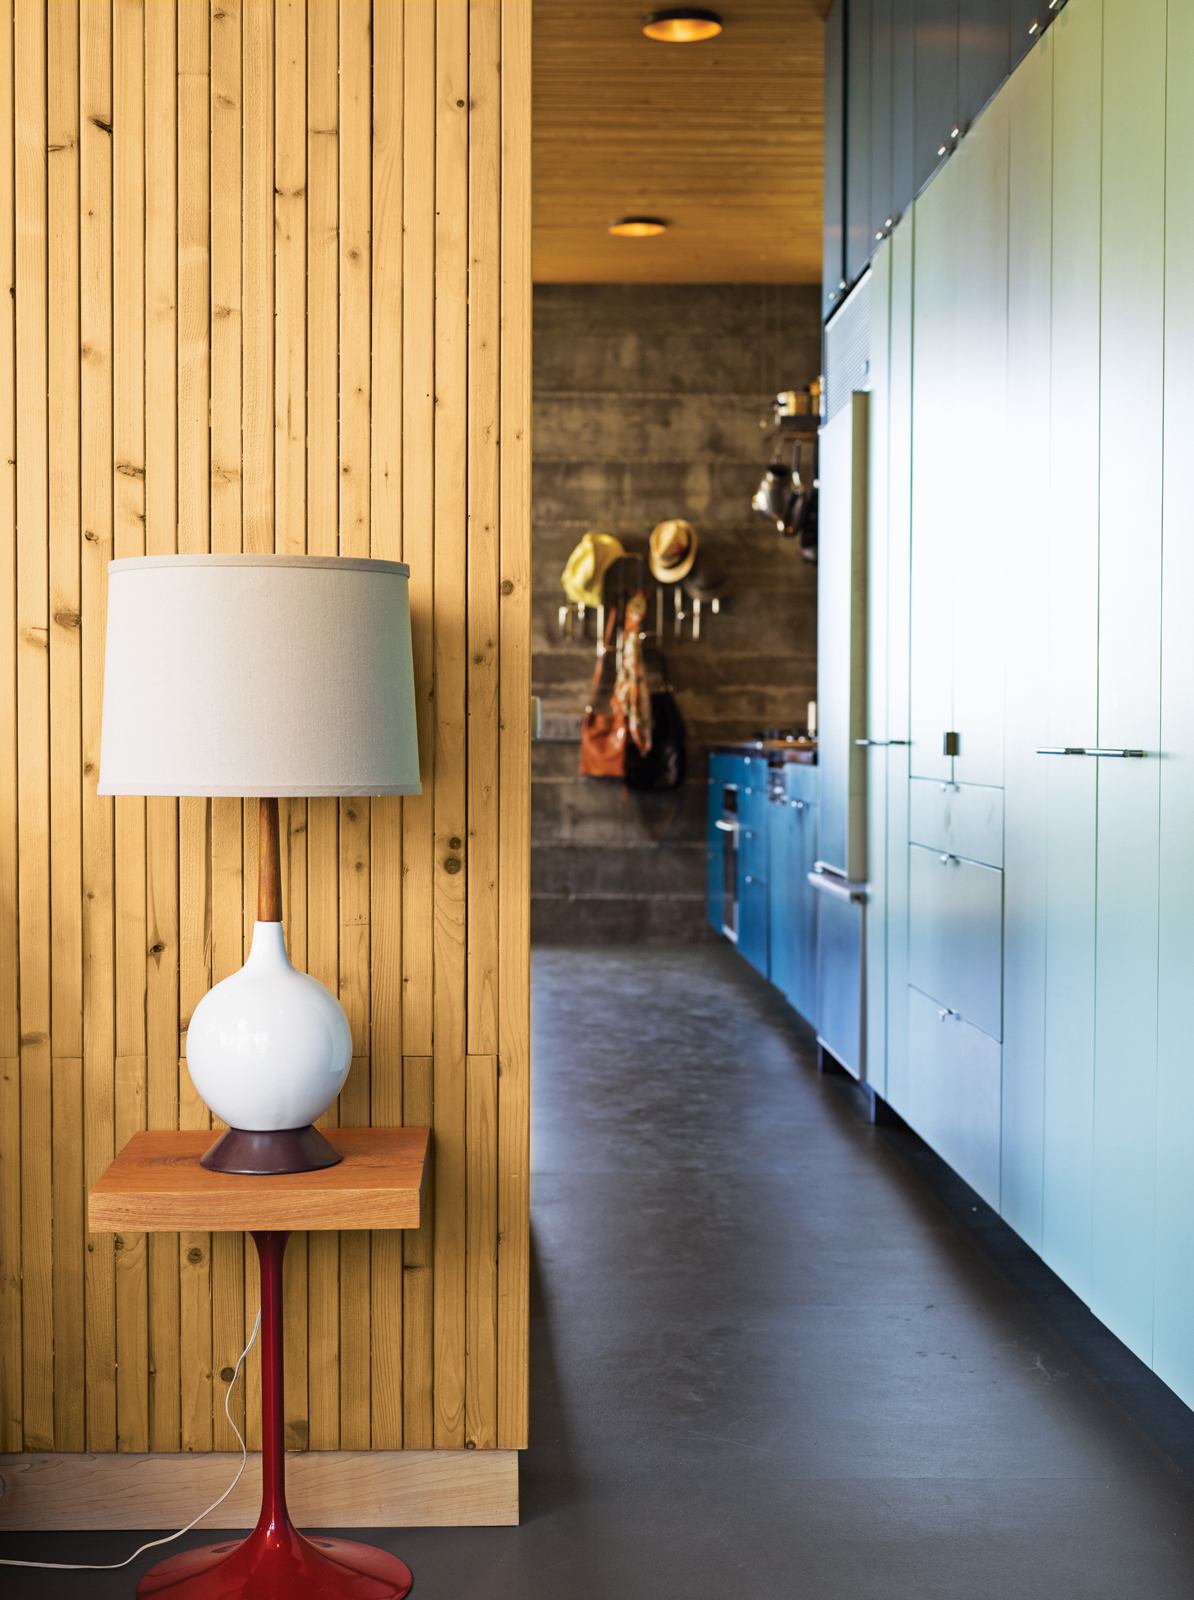 Modern kitchen hallway with wood-paneled wall